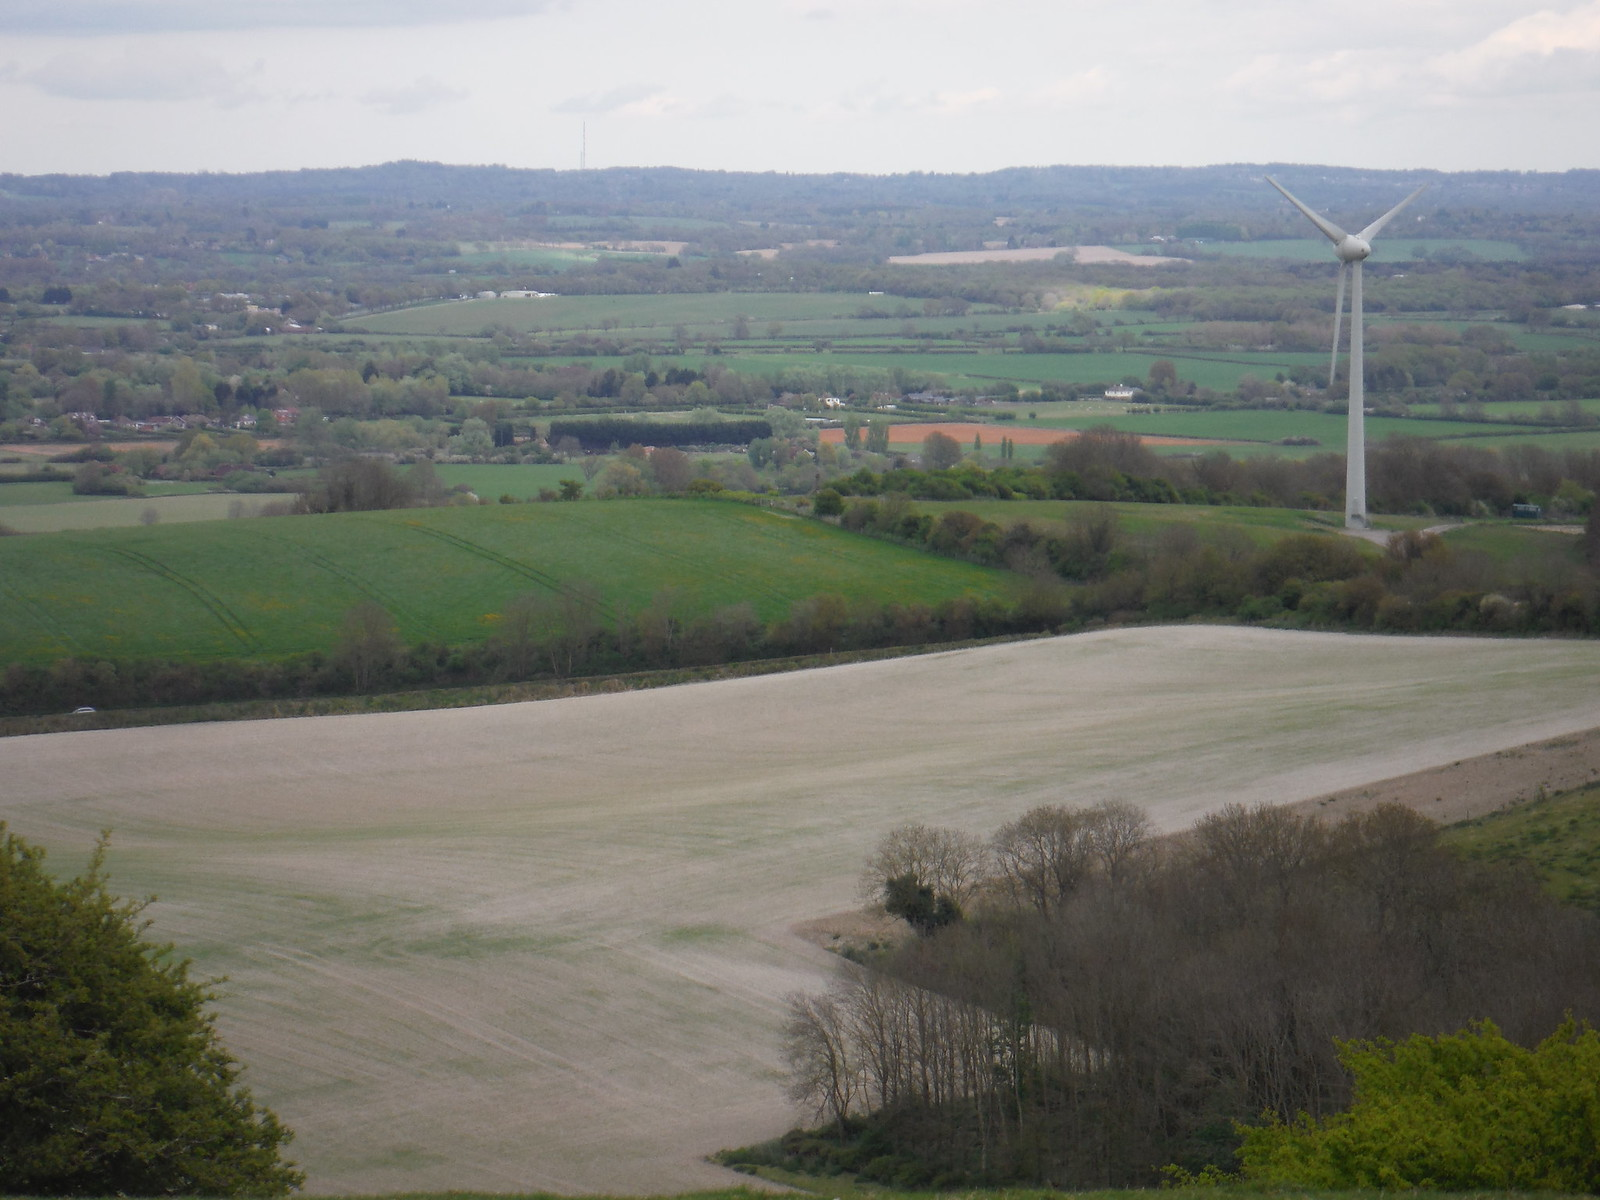 Glyndebourne Wind Turbine, from Saxon Cross Copse SWC Walk 272 Uckfield to Lewes